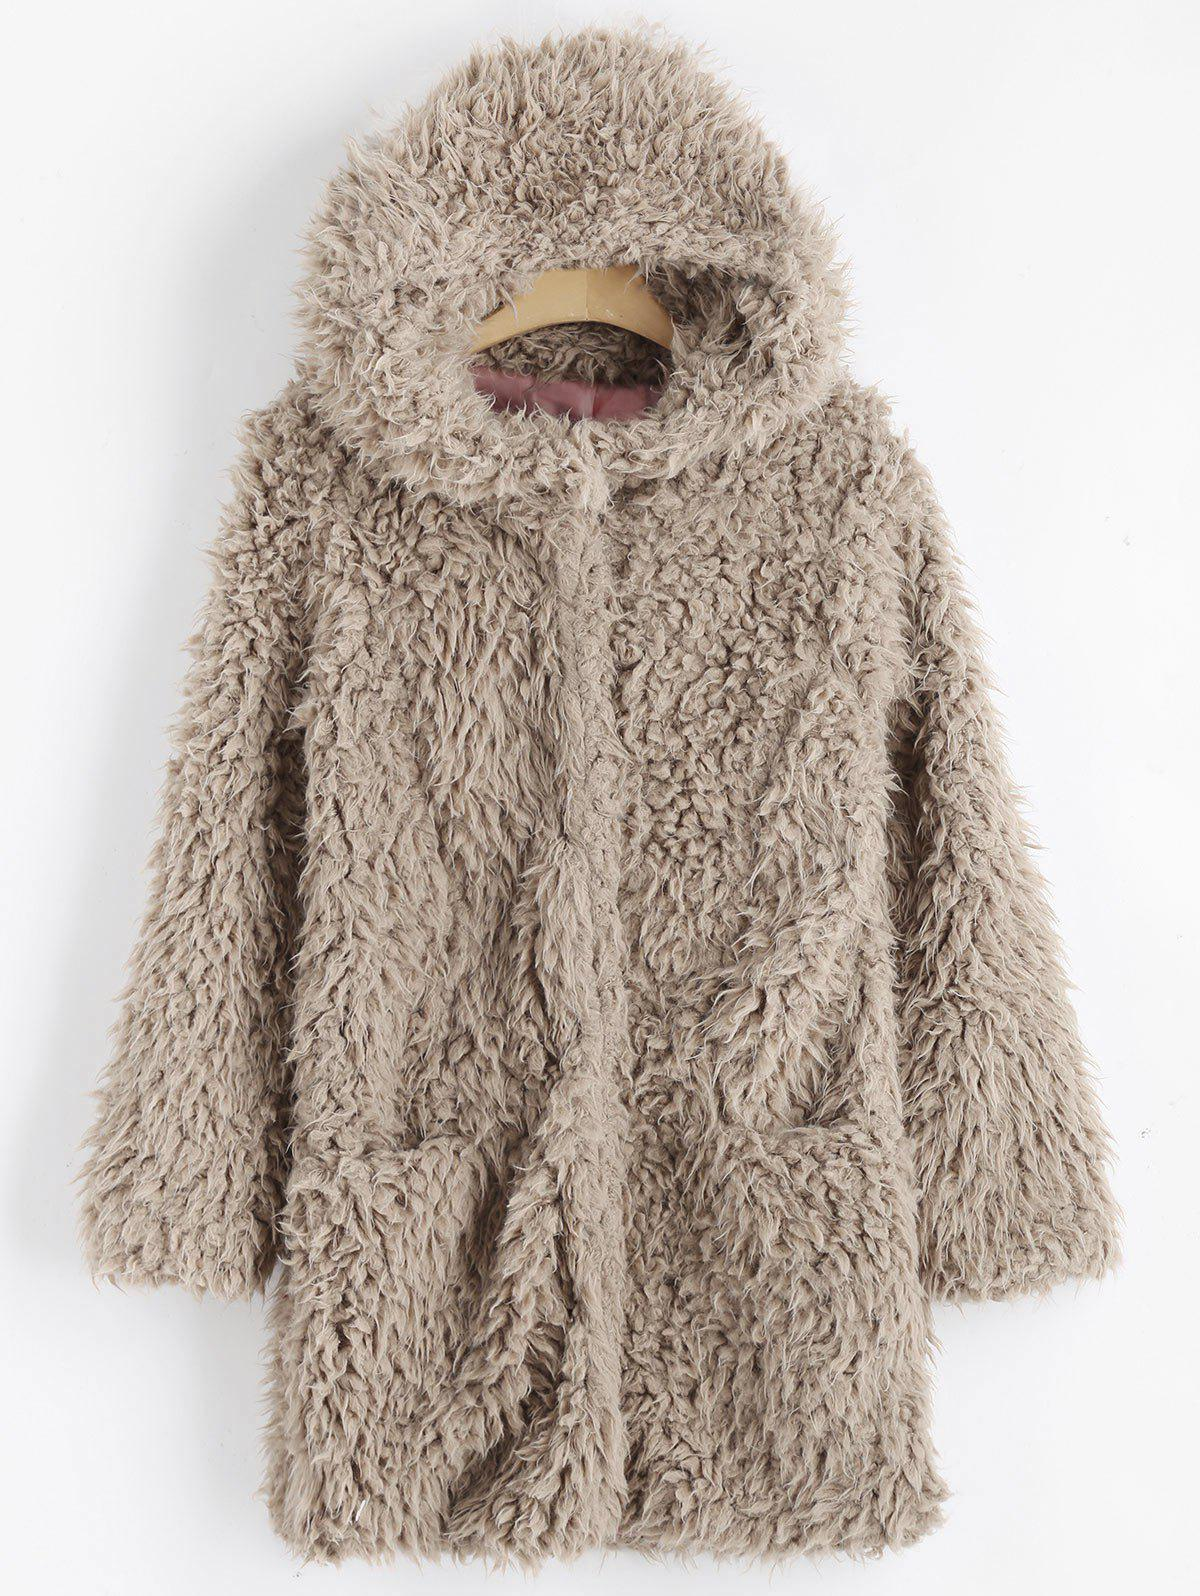 Faux Lamb Wool Hooded Coat with Pocket - LIGHT KHAKI L